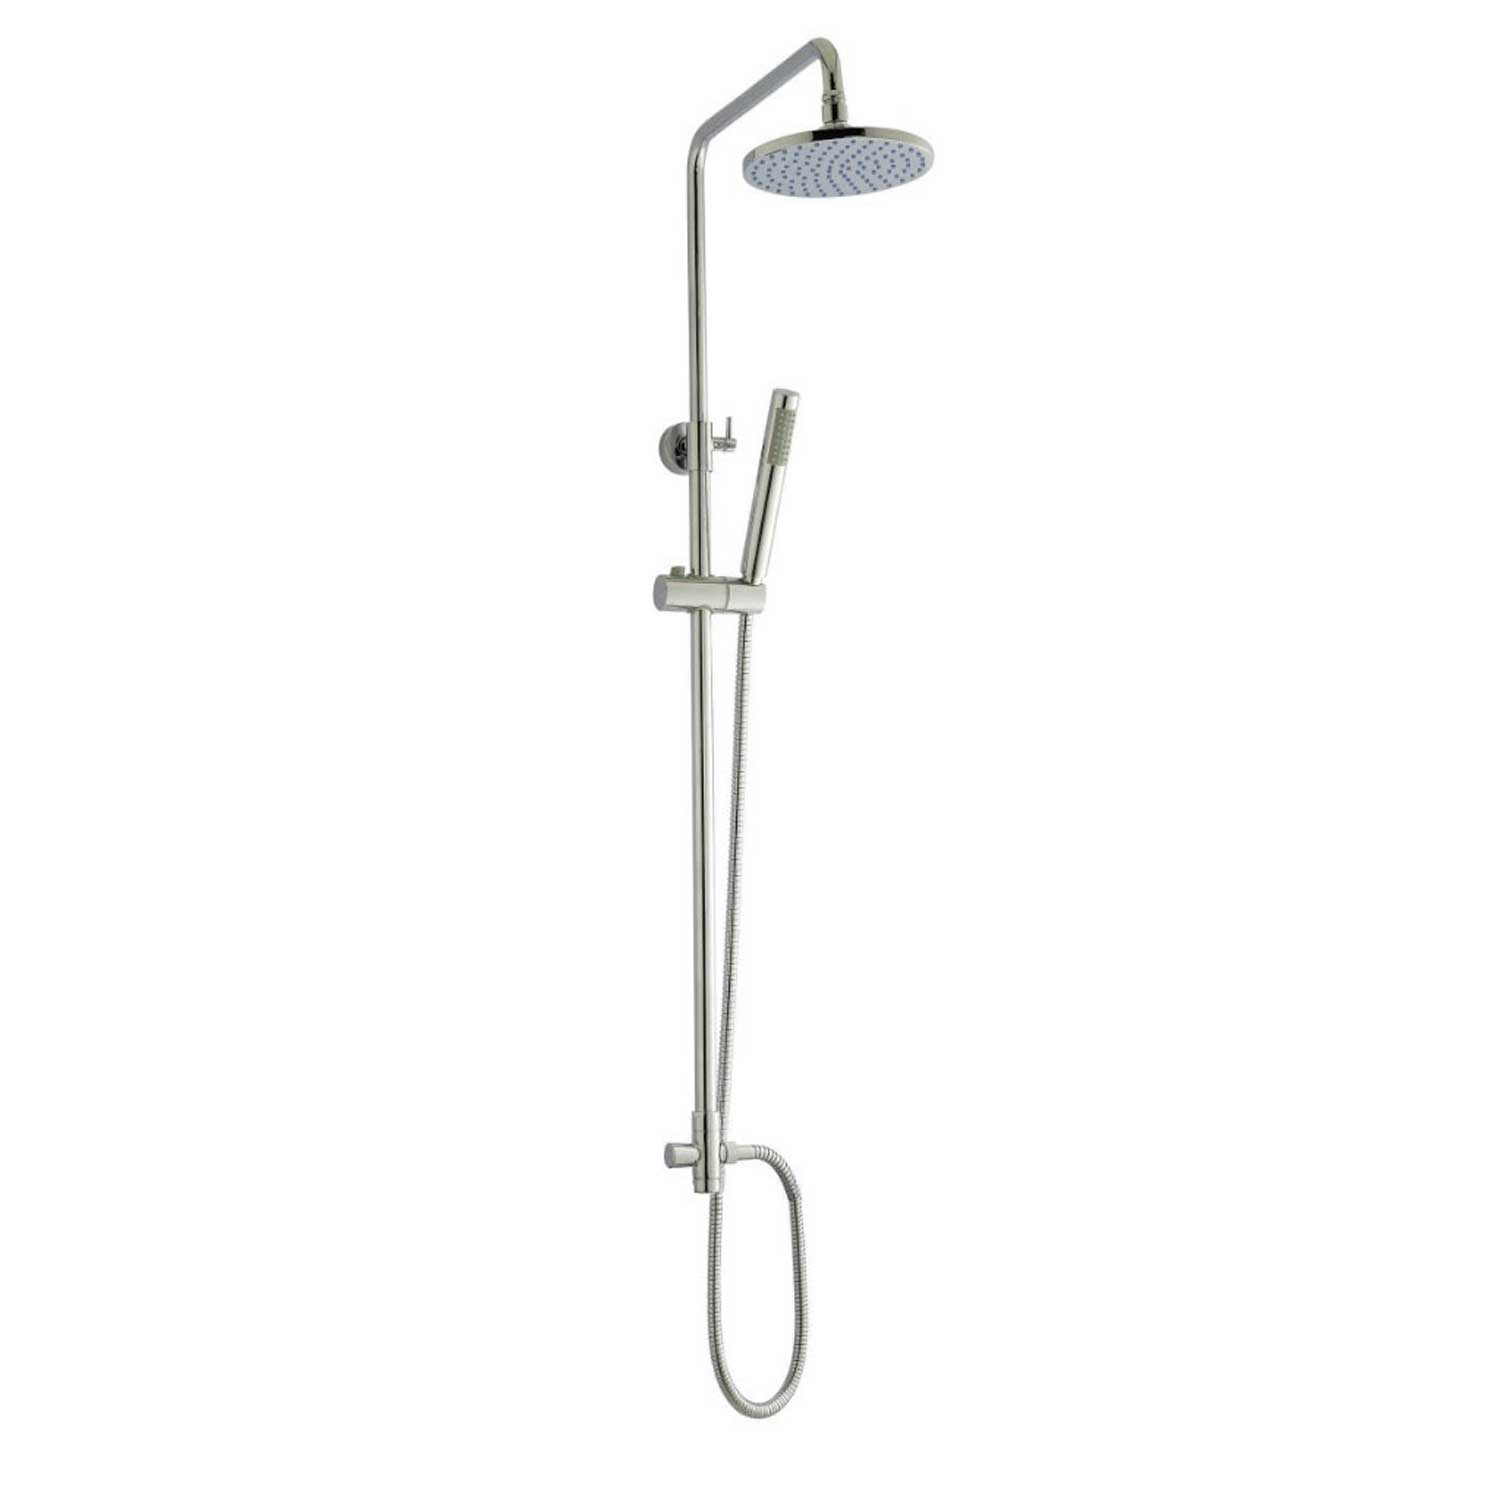 Ultra TMV2 Minimalist Thermostatic Bar Shower Mixer with Shower Kit + Fixed Head - Chrome